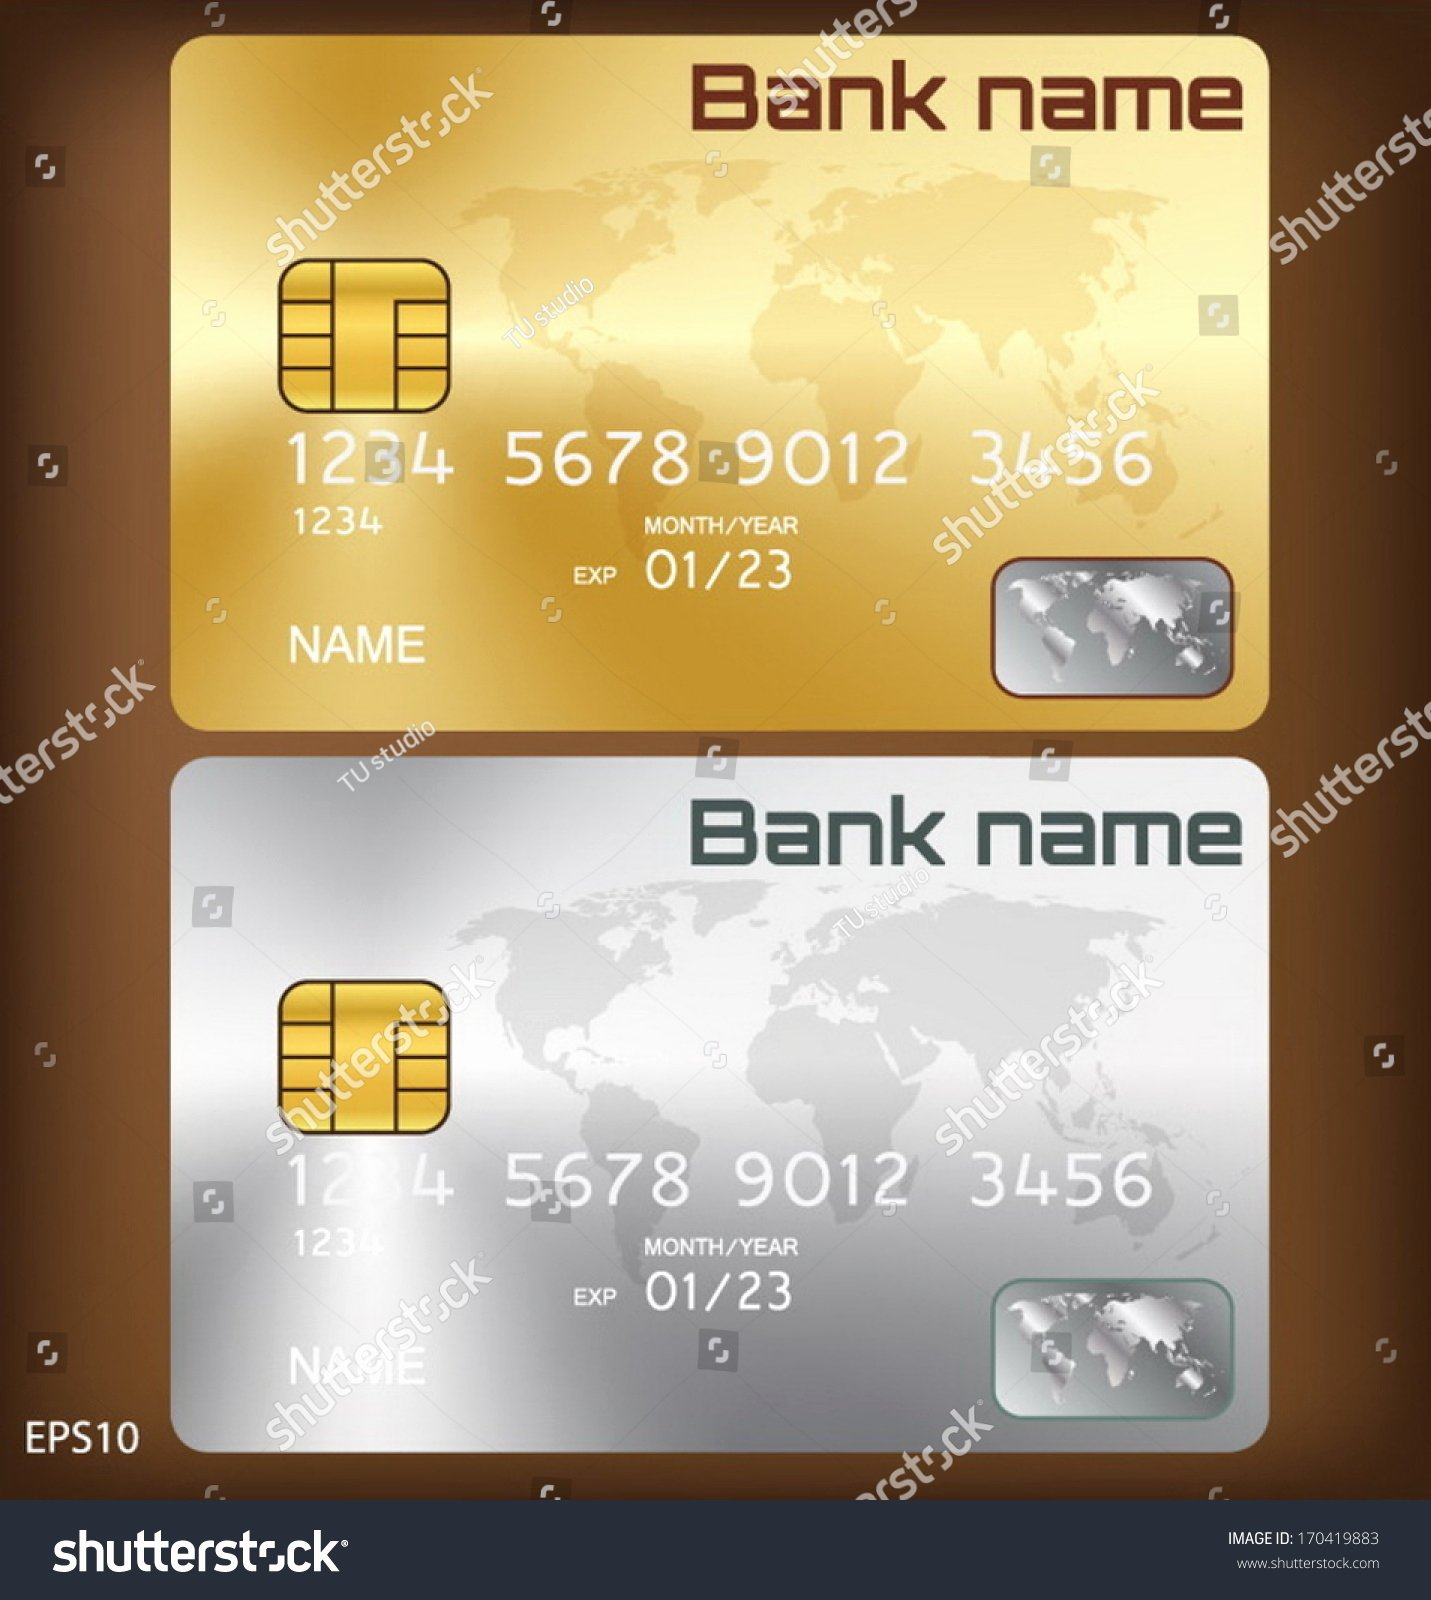 Credit Card Design Template Best Of Gold Silver Credit Card Smart Card Template Design